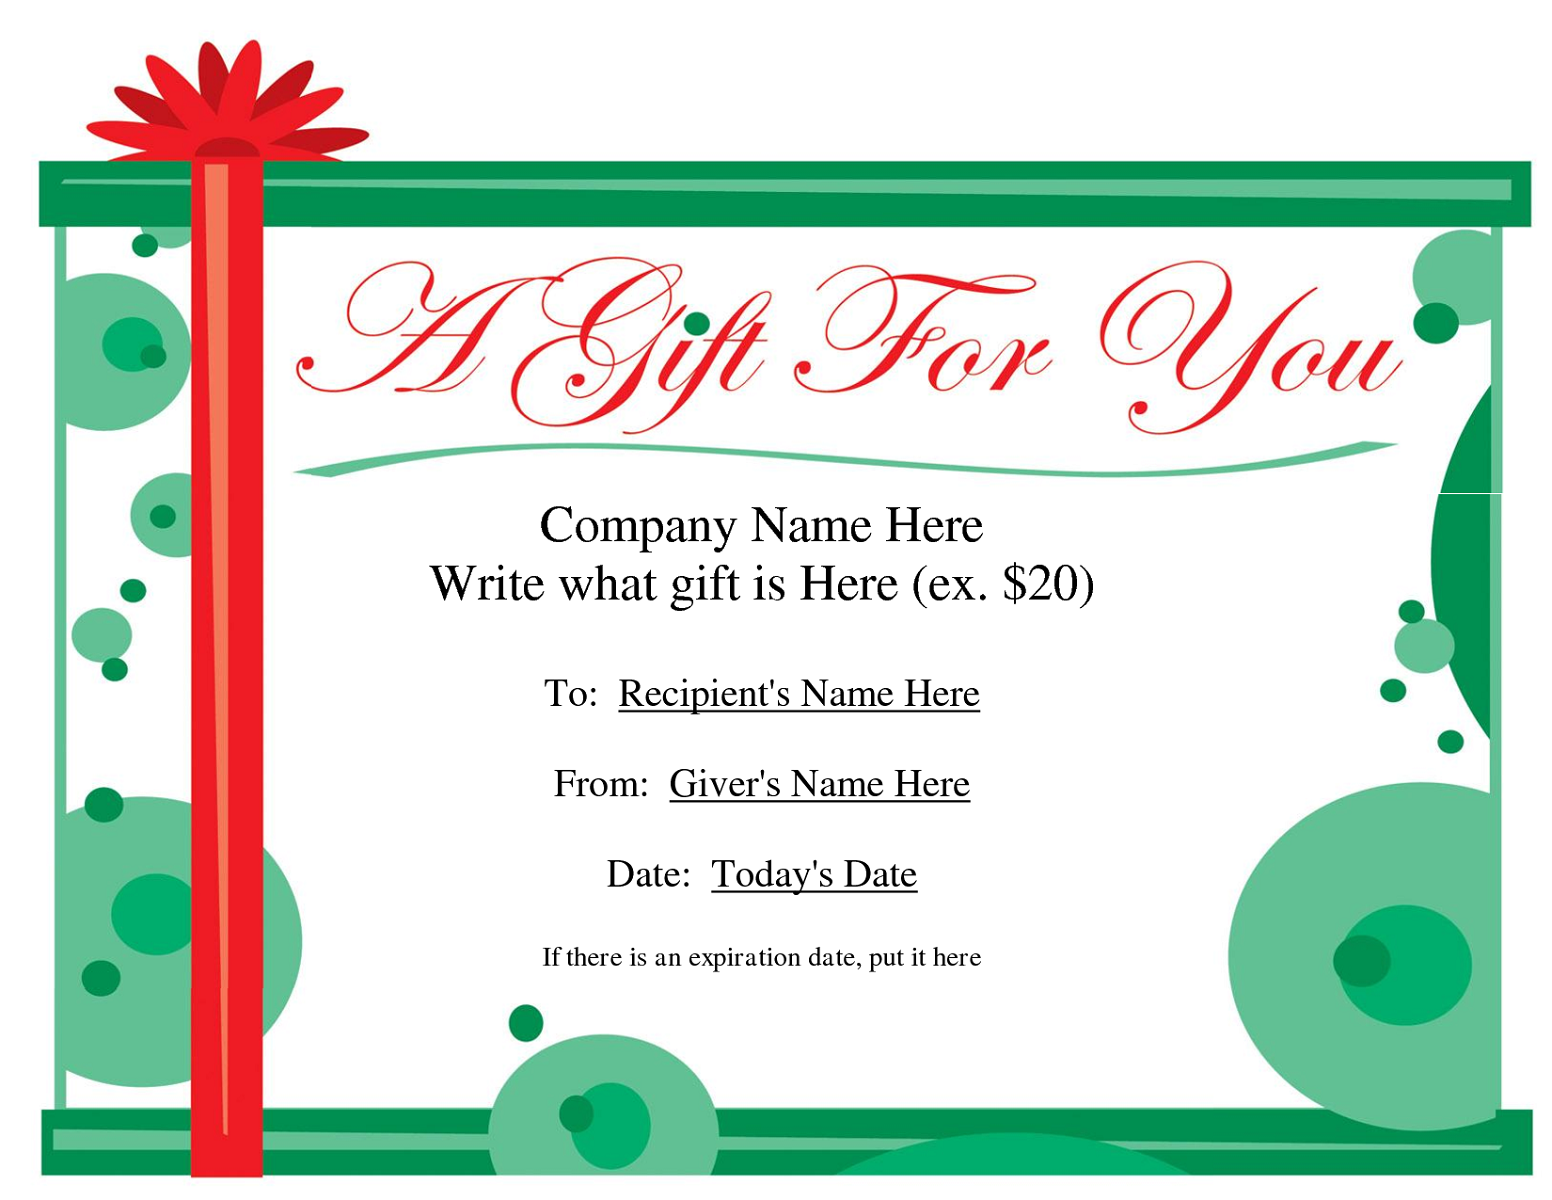 Gift Certificate Templates to Print – Personalized Gift Certificates Template Free